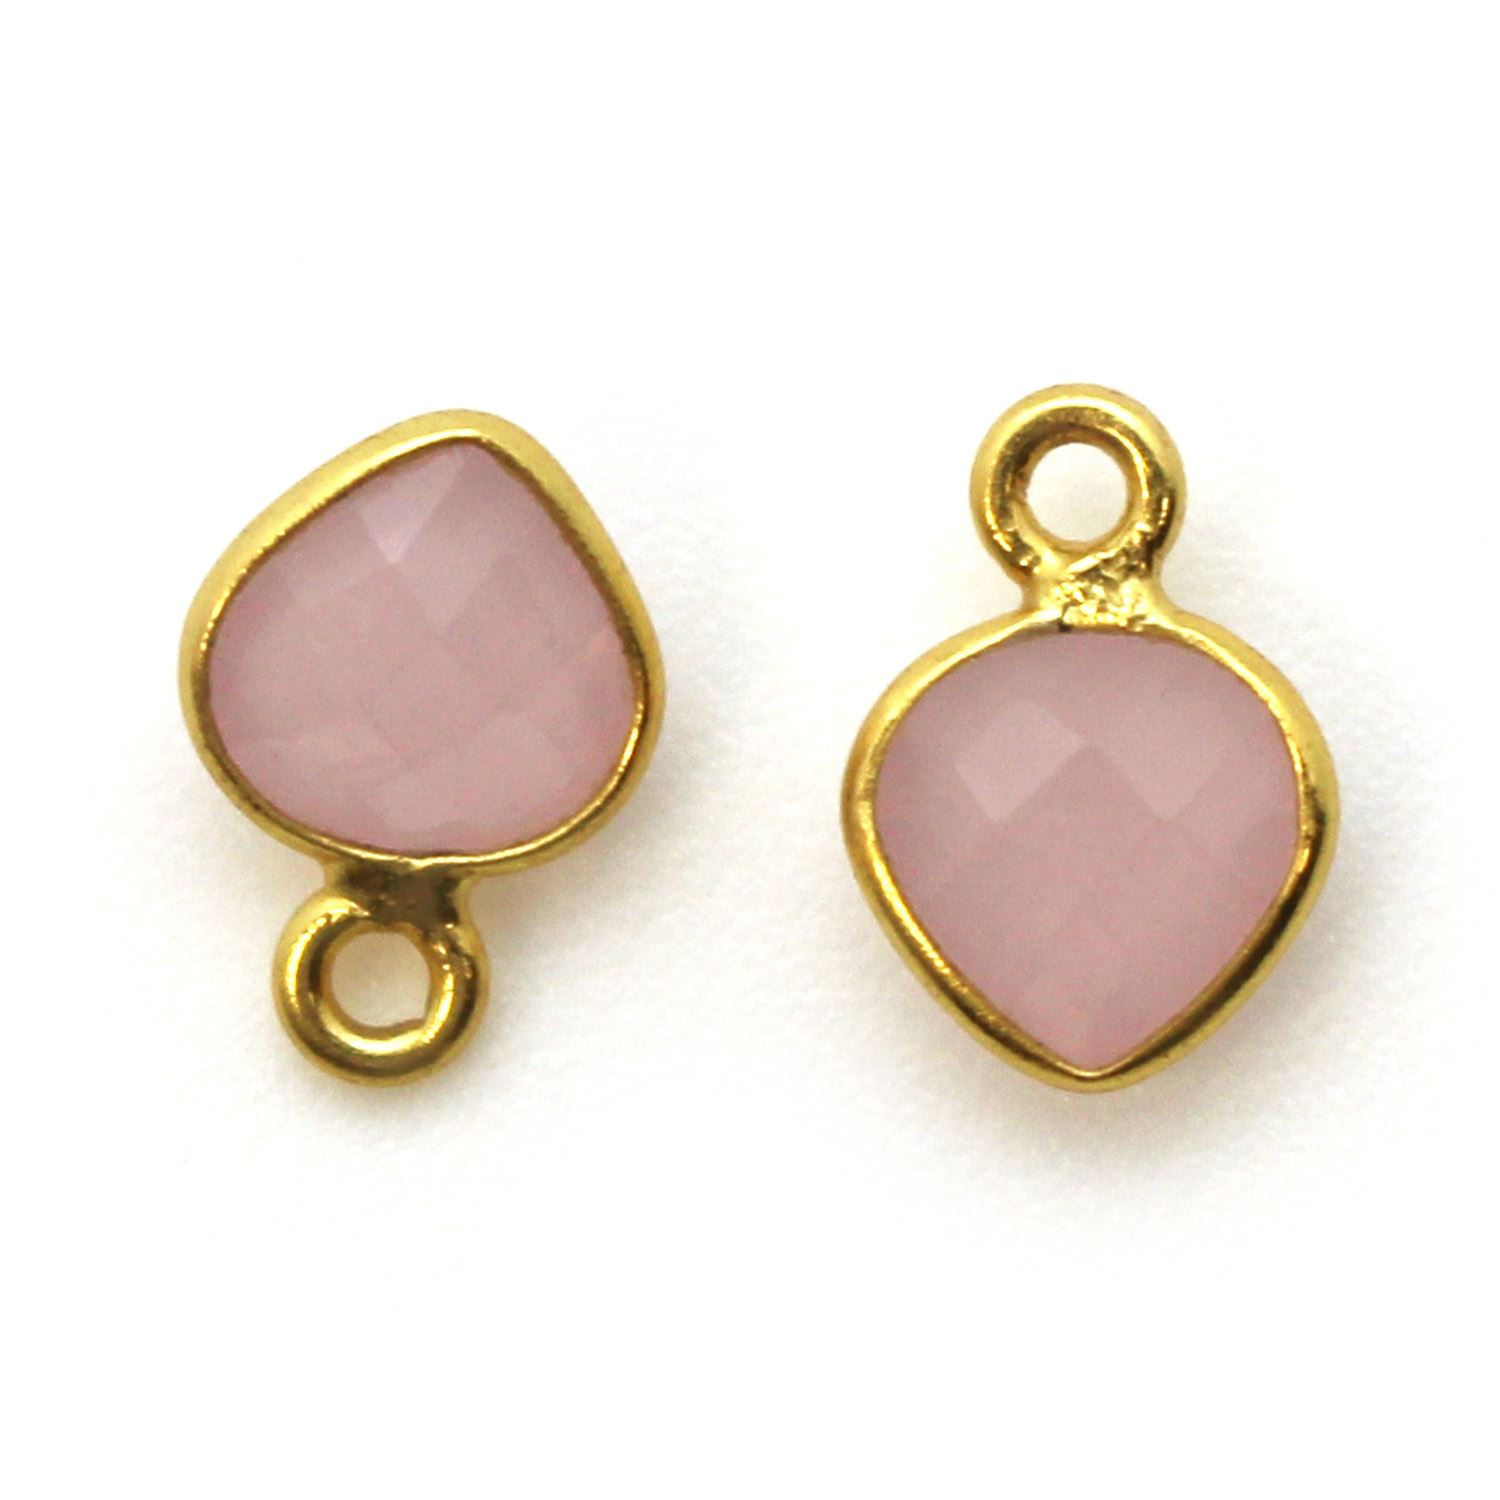 Bezel Gem Pendant-Gold Plated Sterling Silver- 10x7mm Tiny Heart Shape- Pink Chalcedony (sold per 2 pieces)